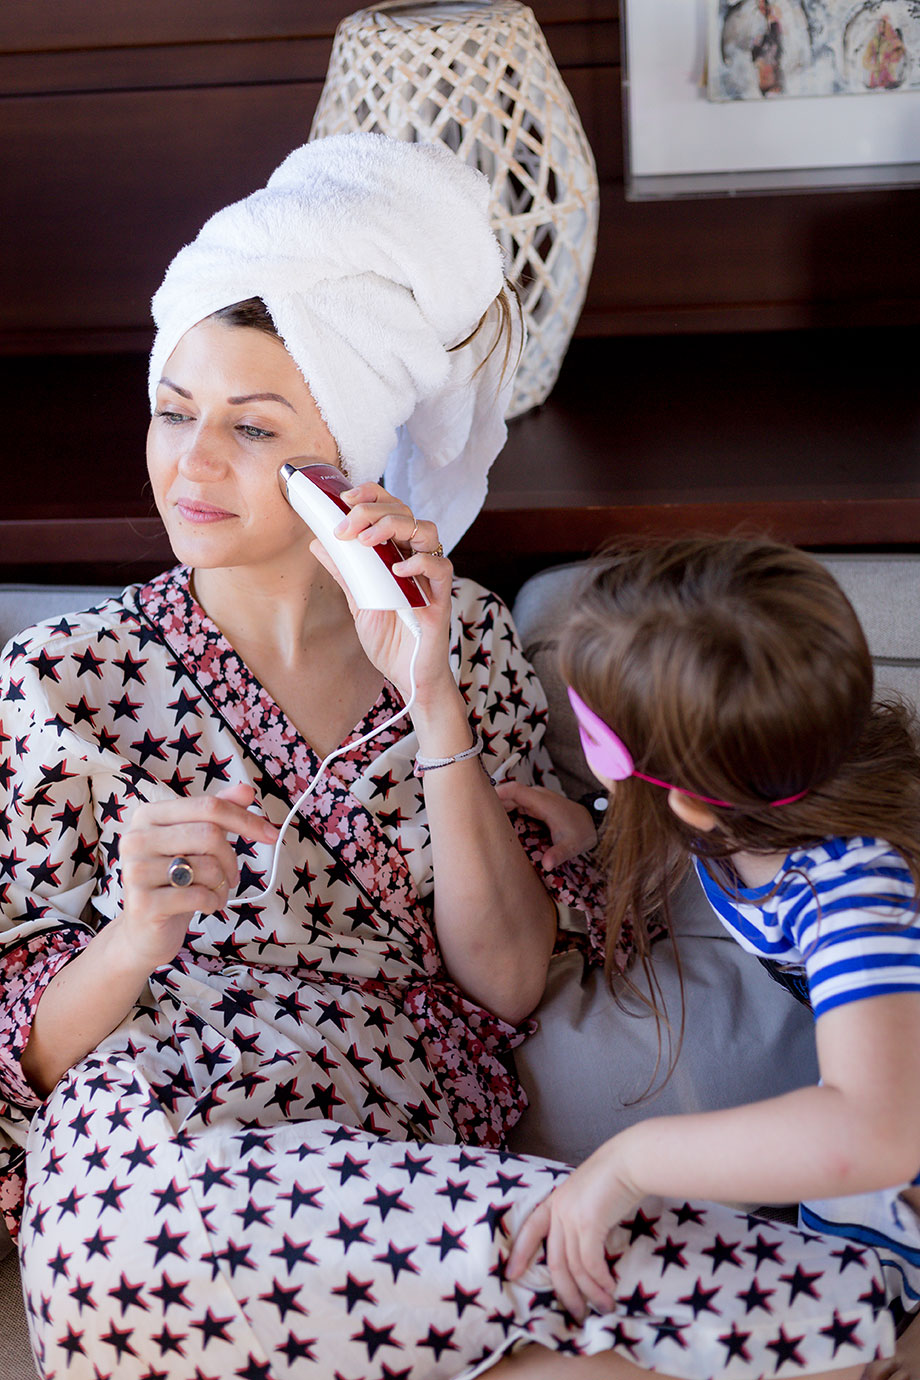 Corri teaches Zelda about skincare on a boat in Greece.